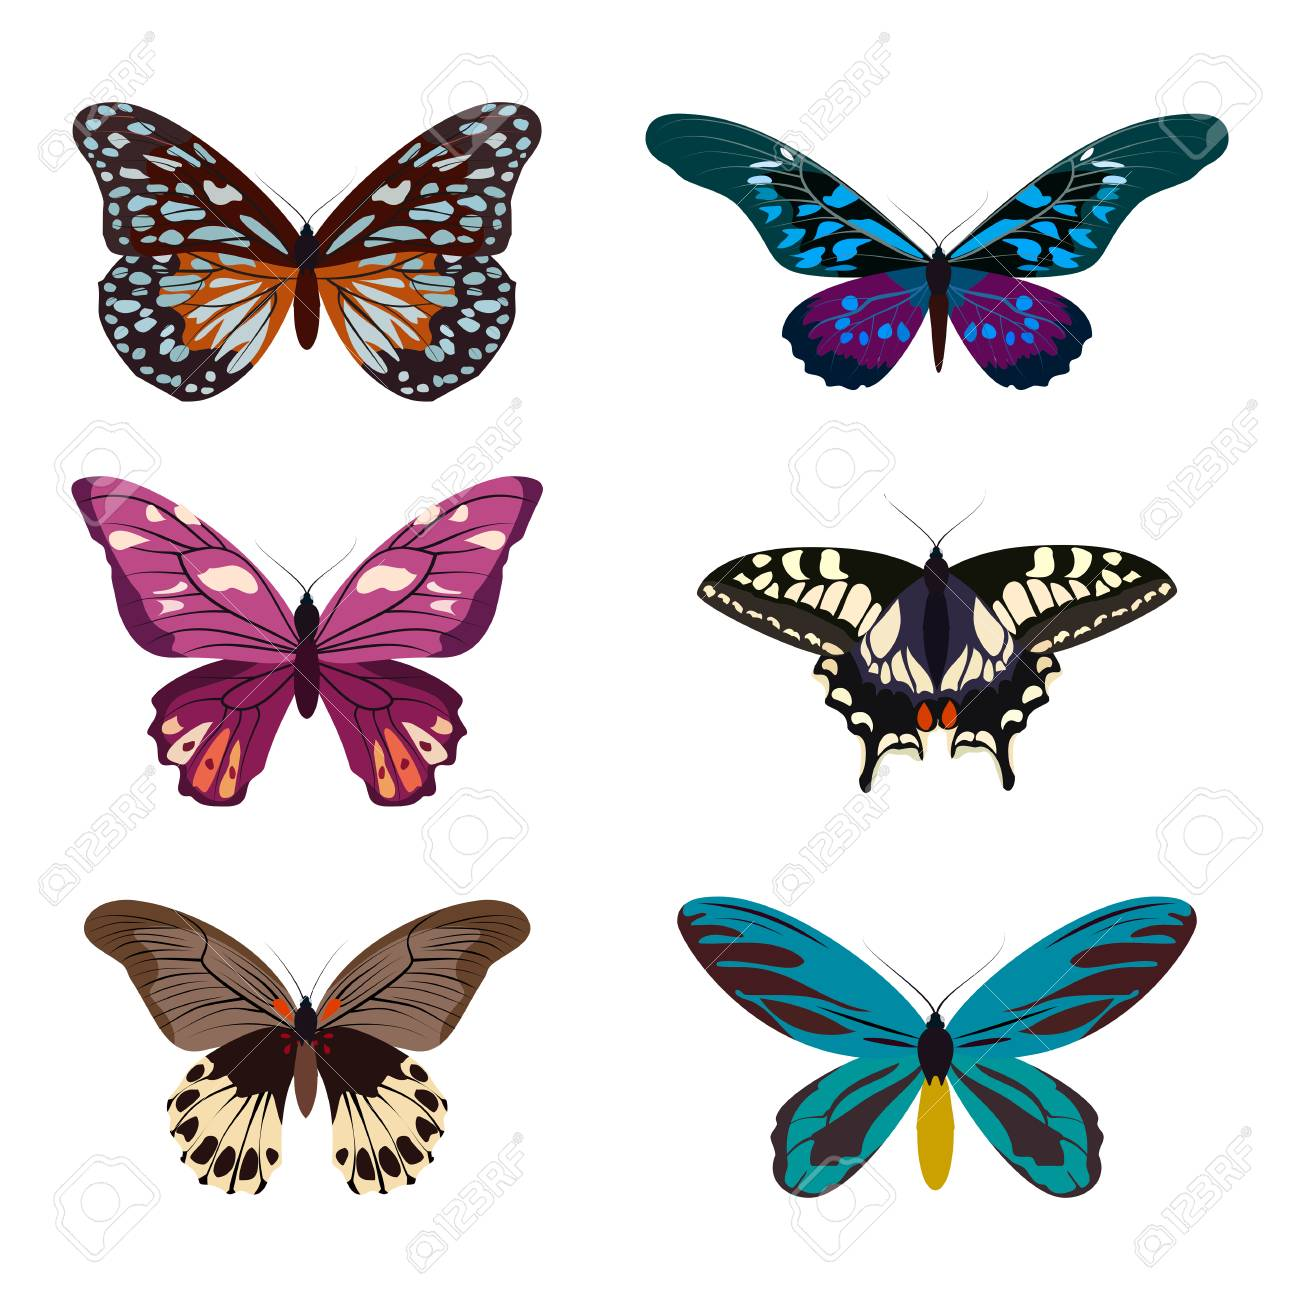 Big Collection Of Colorful Butterflies. Butterflies Isolated.. Stock ...